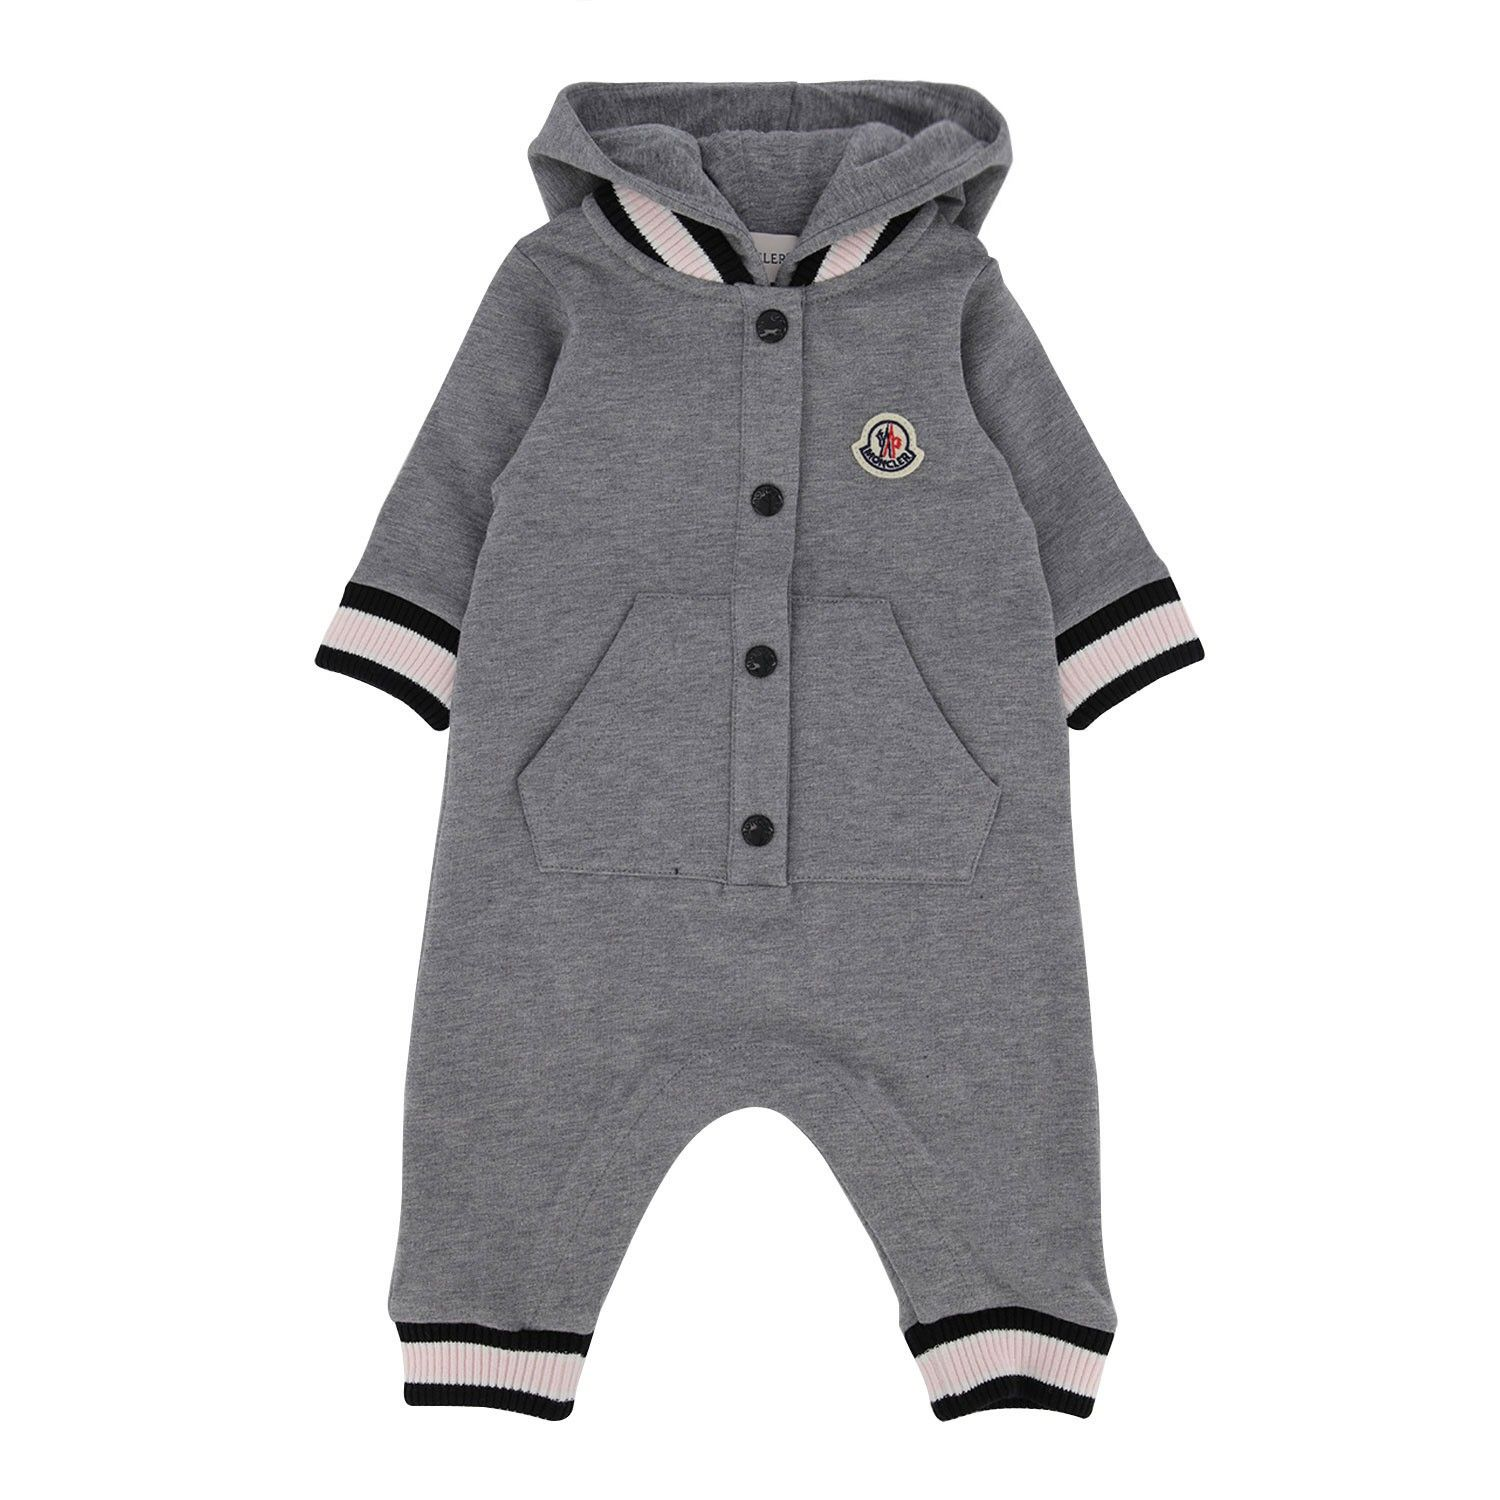 Picture of Moncler 8L71600 baby playsuit light gray